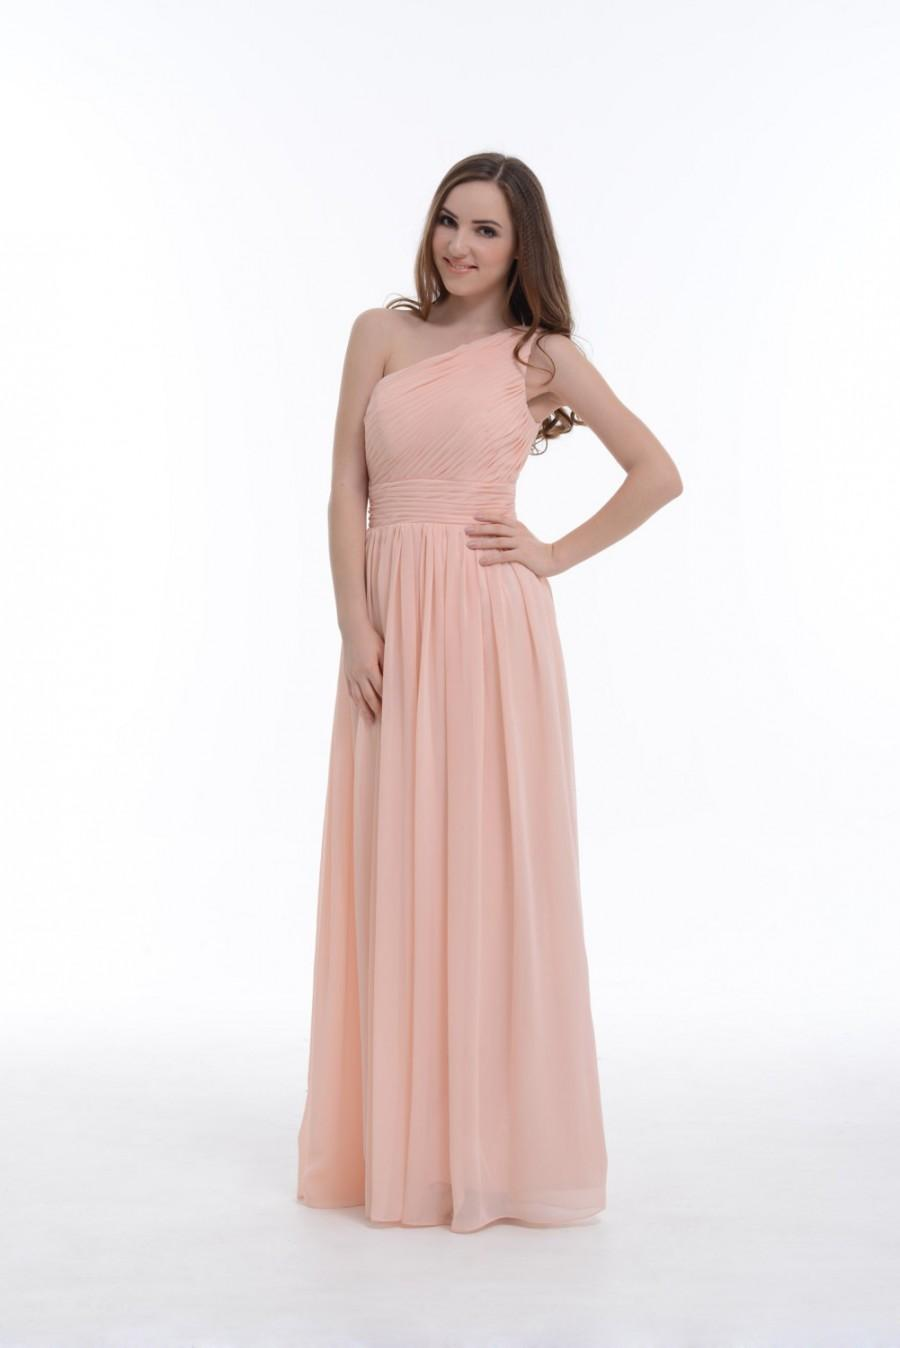 One-Shoulder Bridesmaid Dress, Pearl Pink A-Line Floor-Length ...